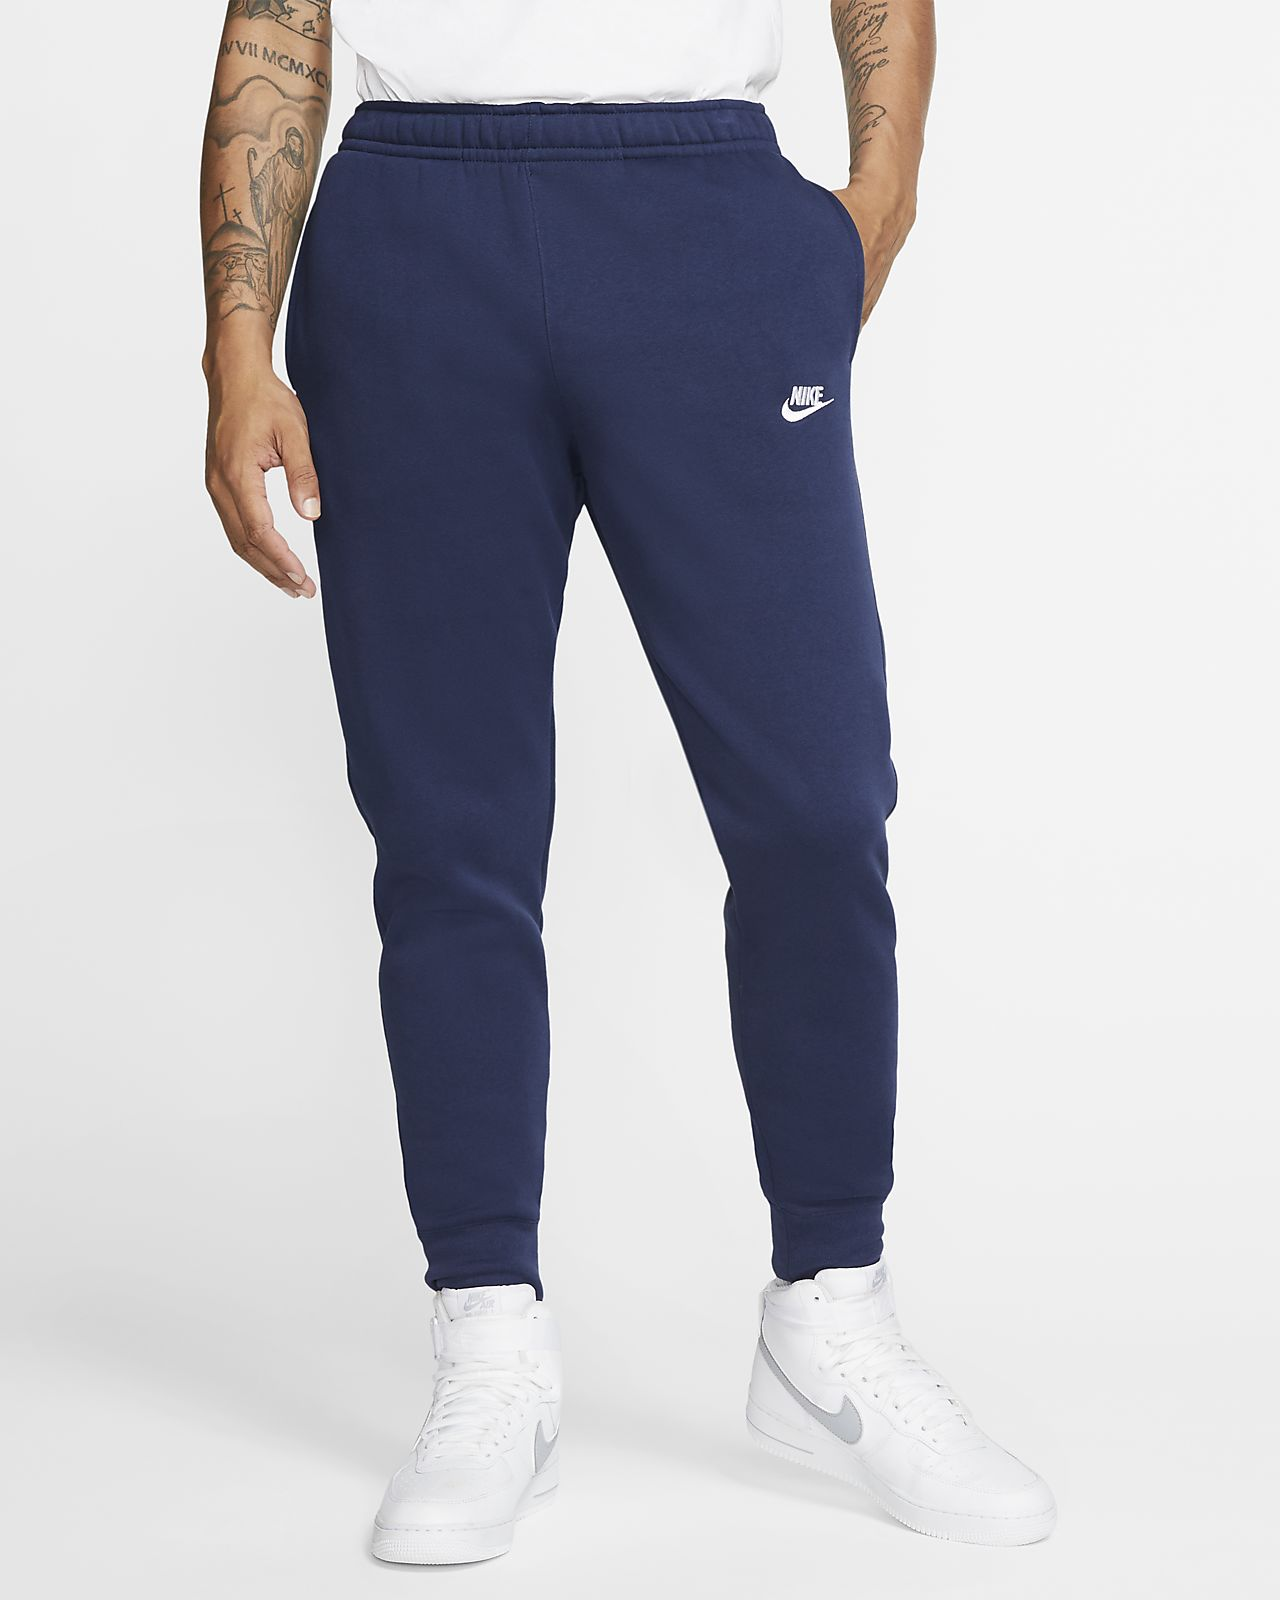 pantalon homme survetement nike